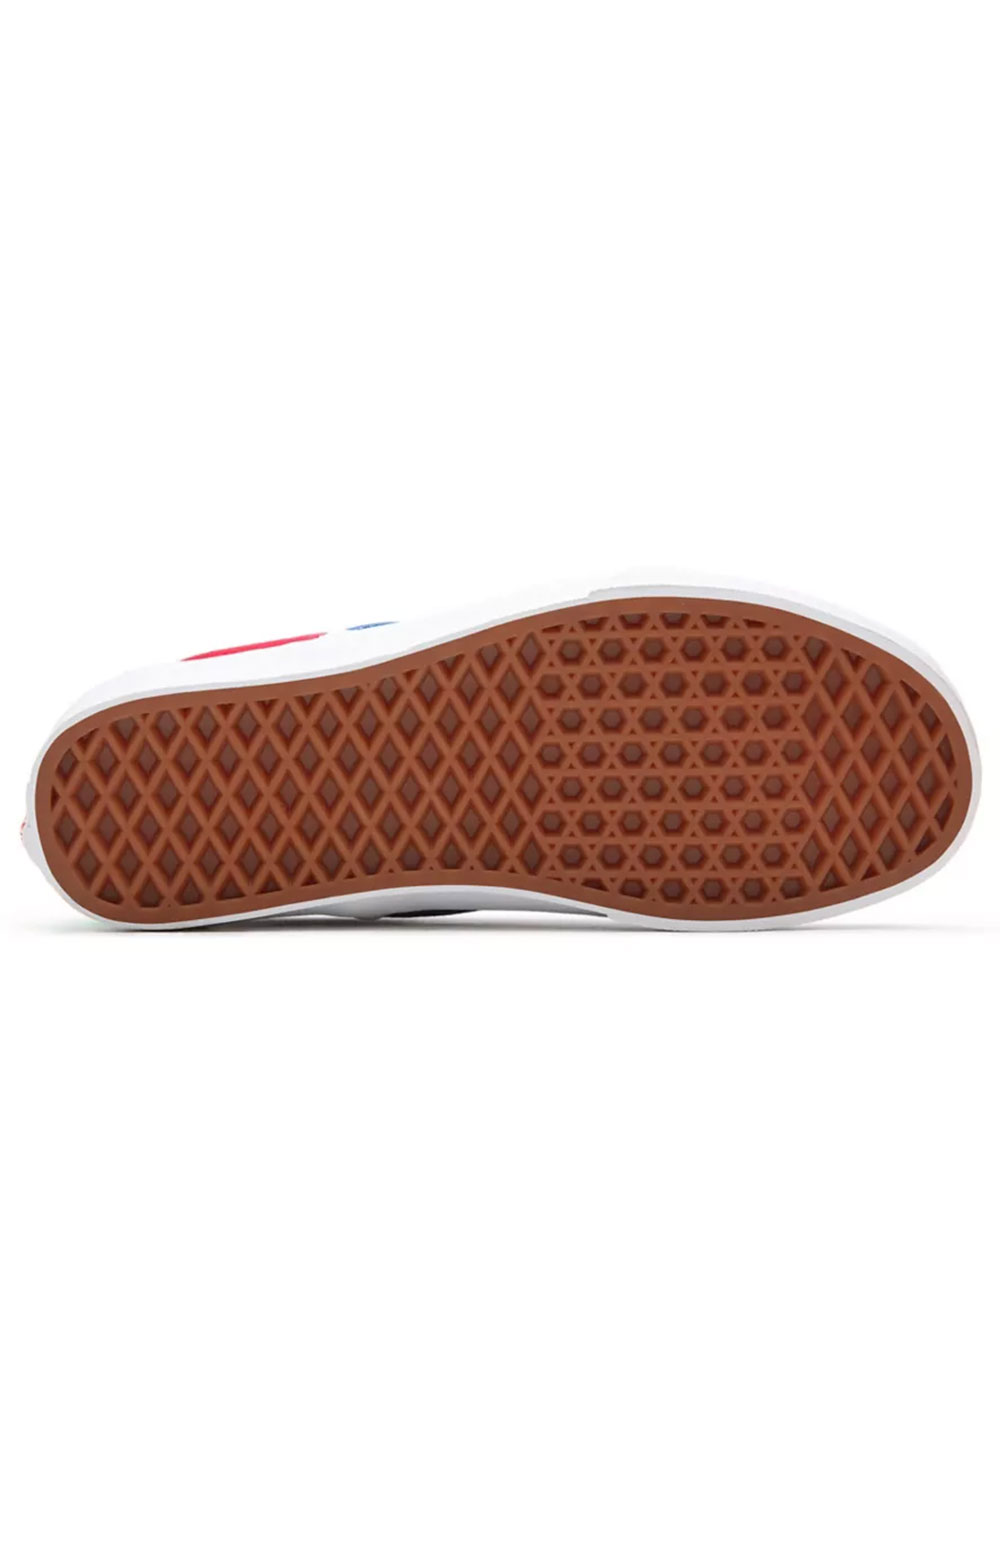 (3TB44B) Pride Classic Slip-On Shoes - Patchwork  4